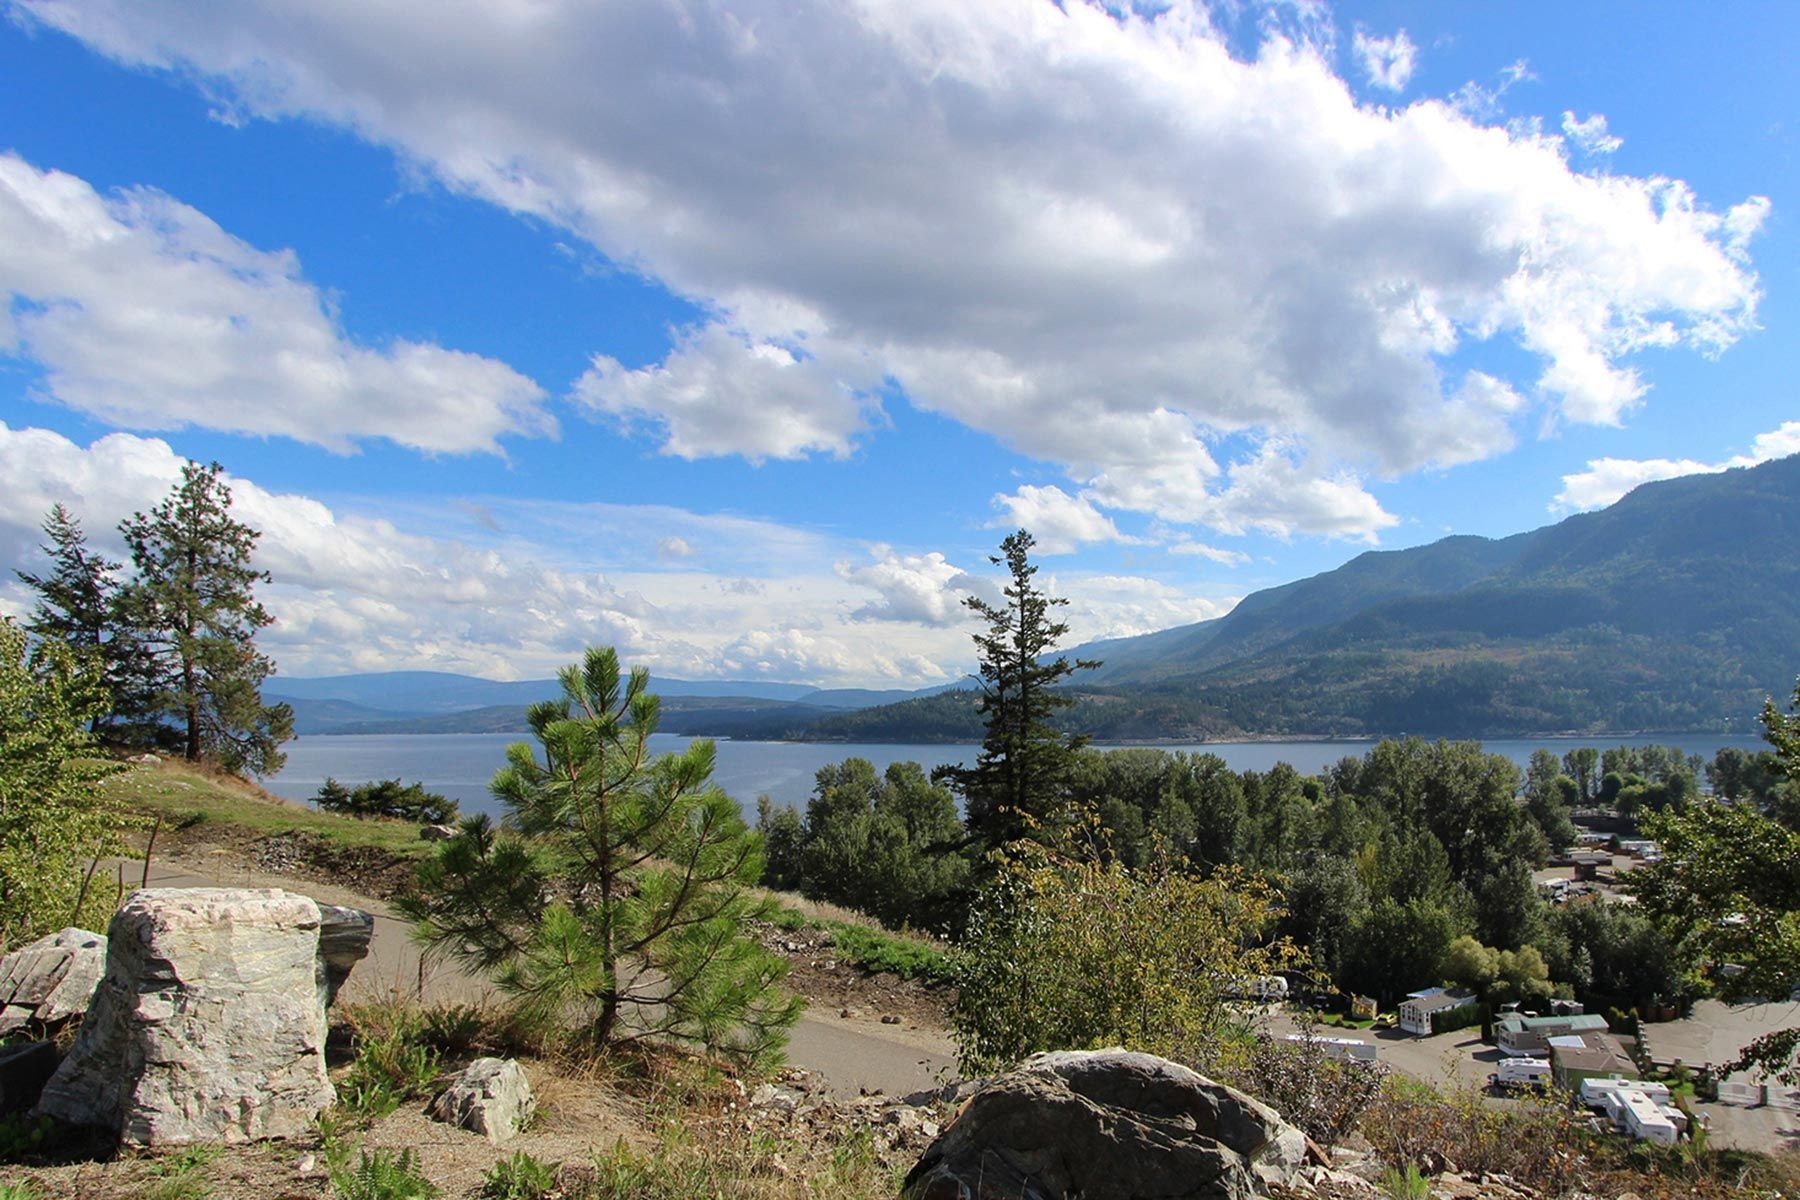 Main Photo: #183 2633 Squilax Anglemont Road: Lee Creek Vacant Land for sale (North Shuswap)  : MLS®# 10240390